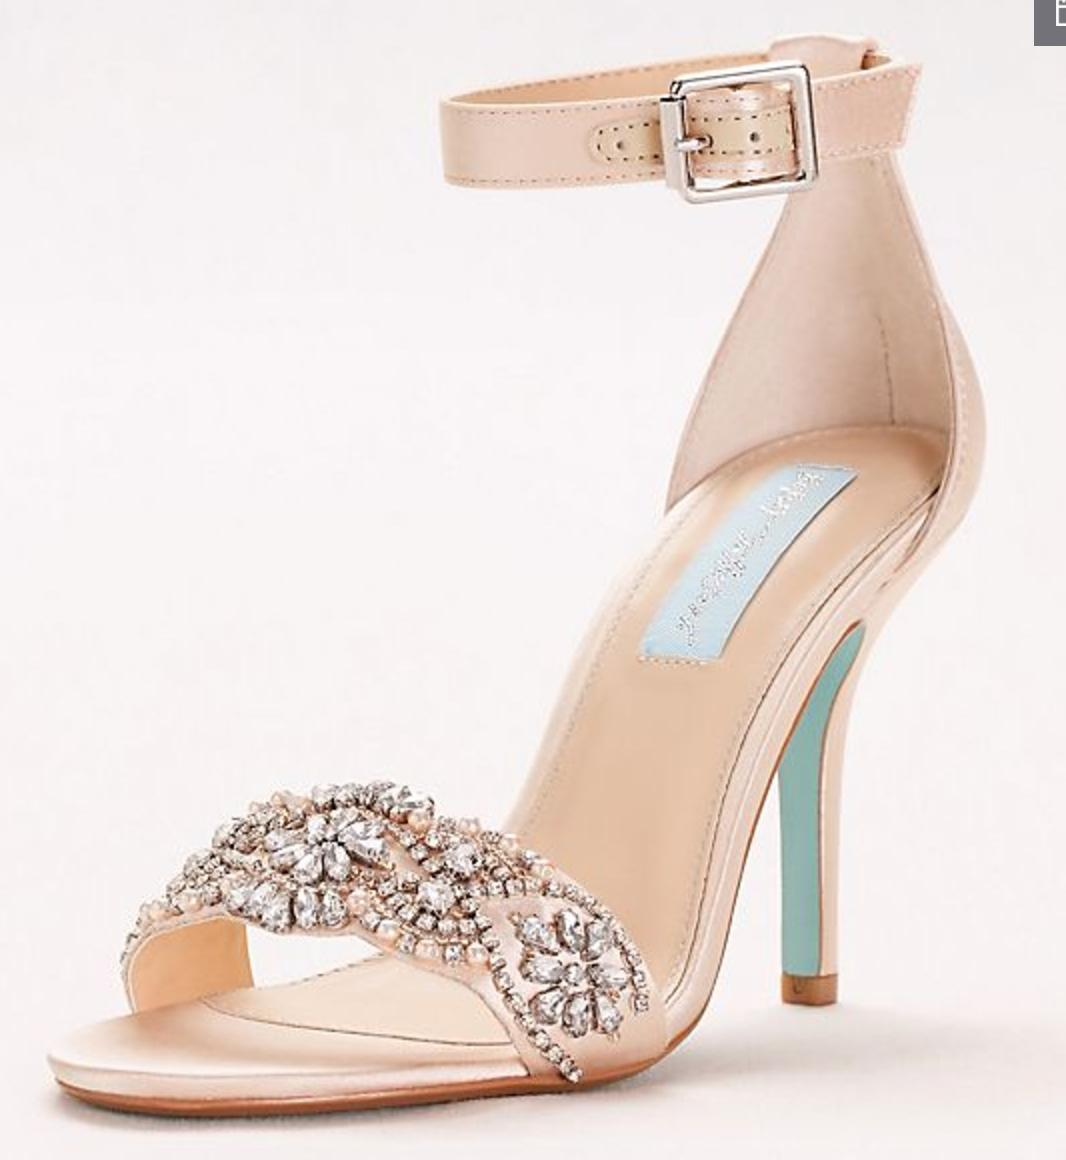 Blue by Betsey Johnson Embellished High Heel Sandals